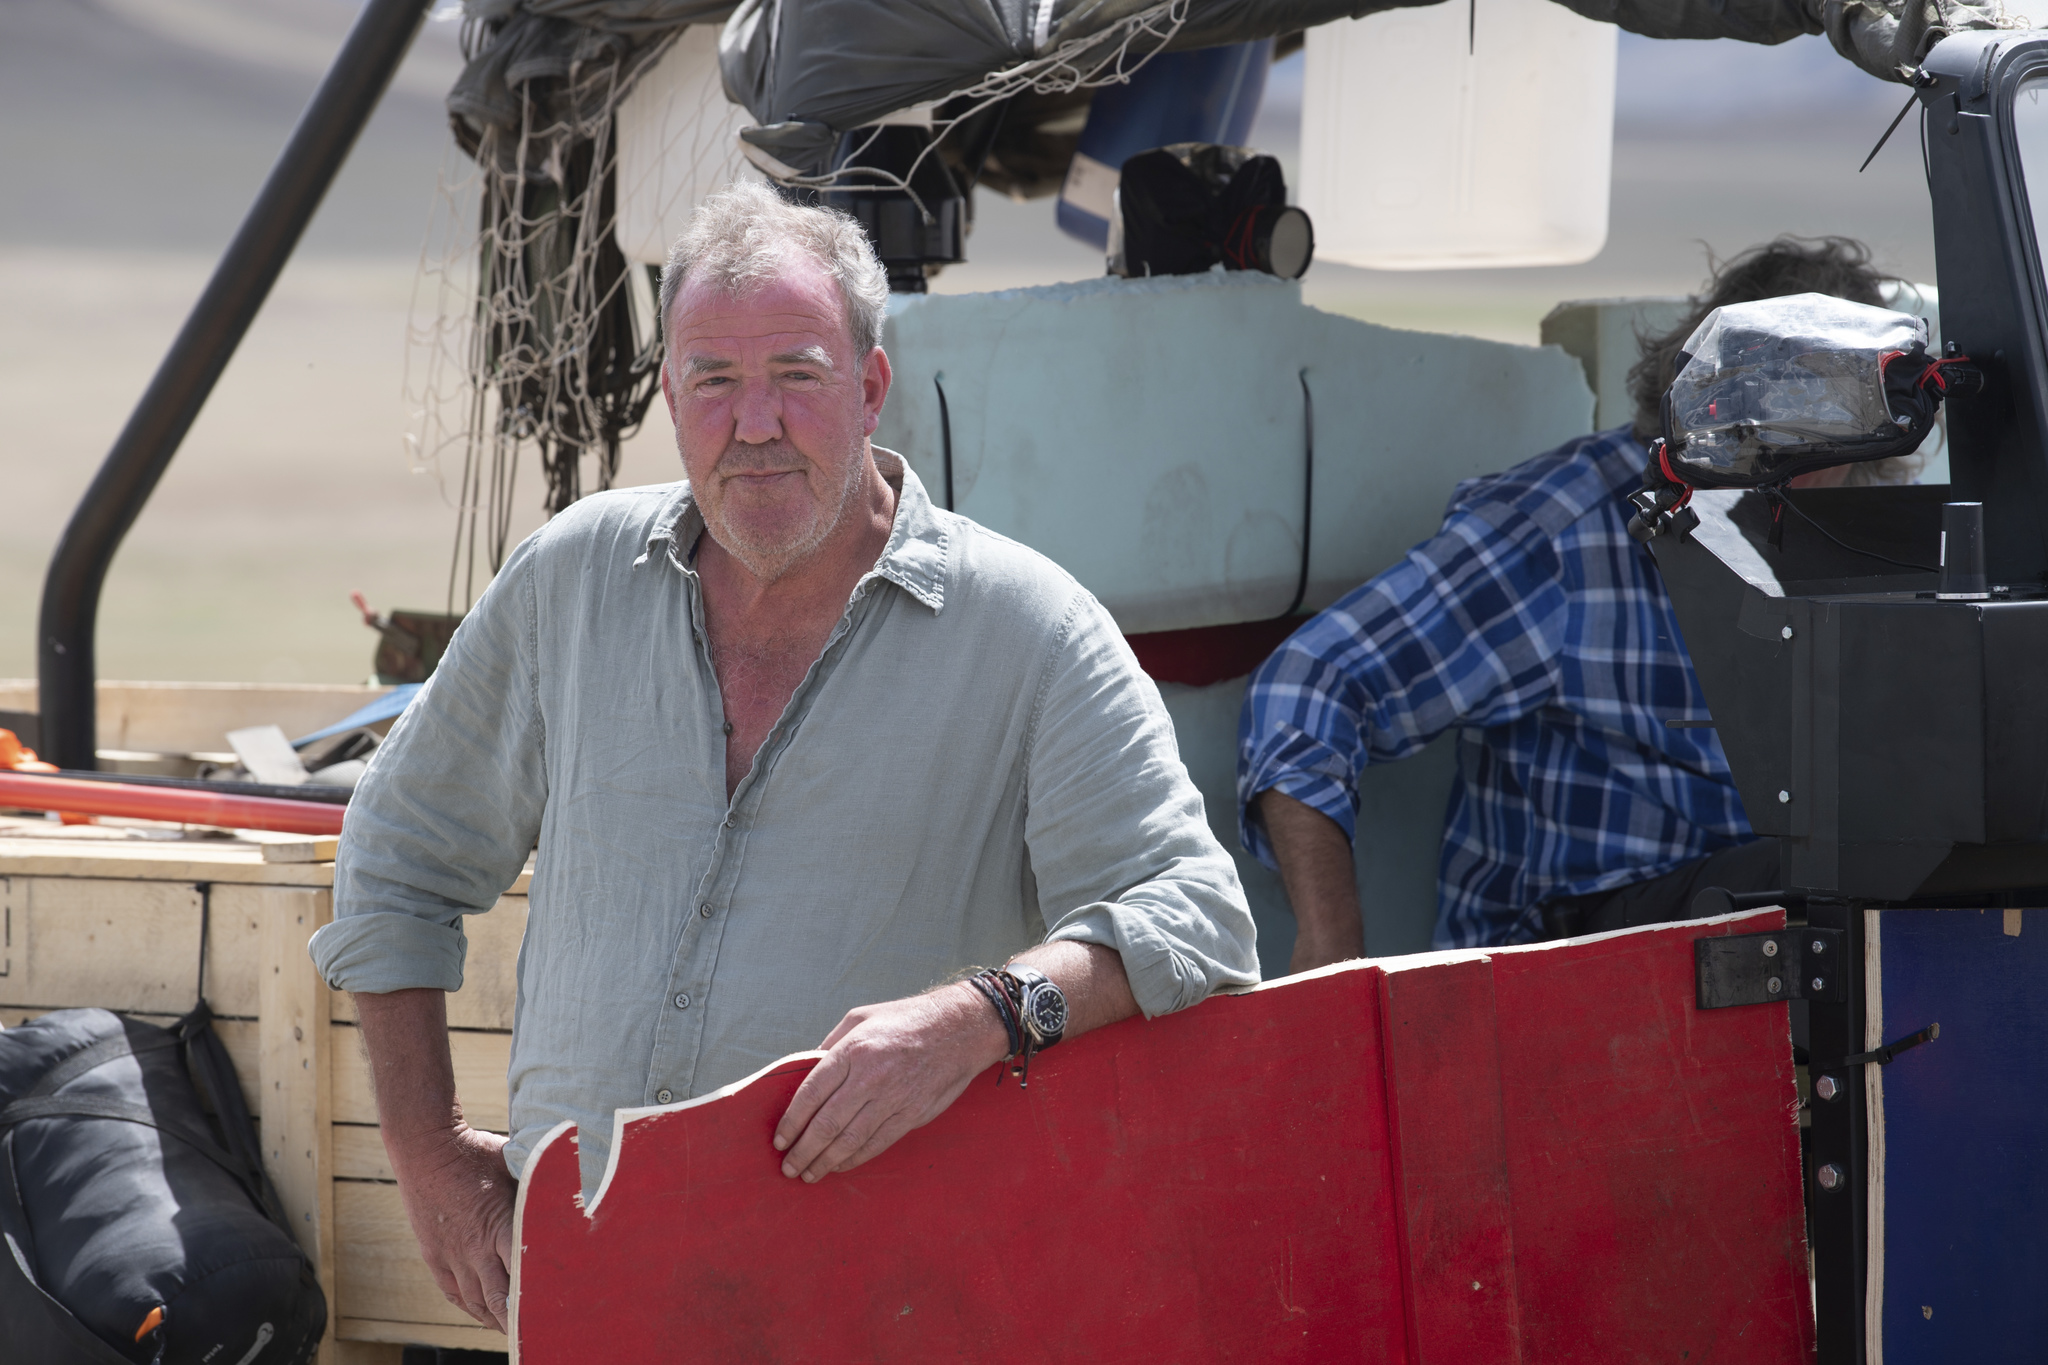 Jeremy Clarkson looks glum AF as he's forced to live on veggie rations in epic The Grand Tour feature-length season 3 special